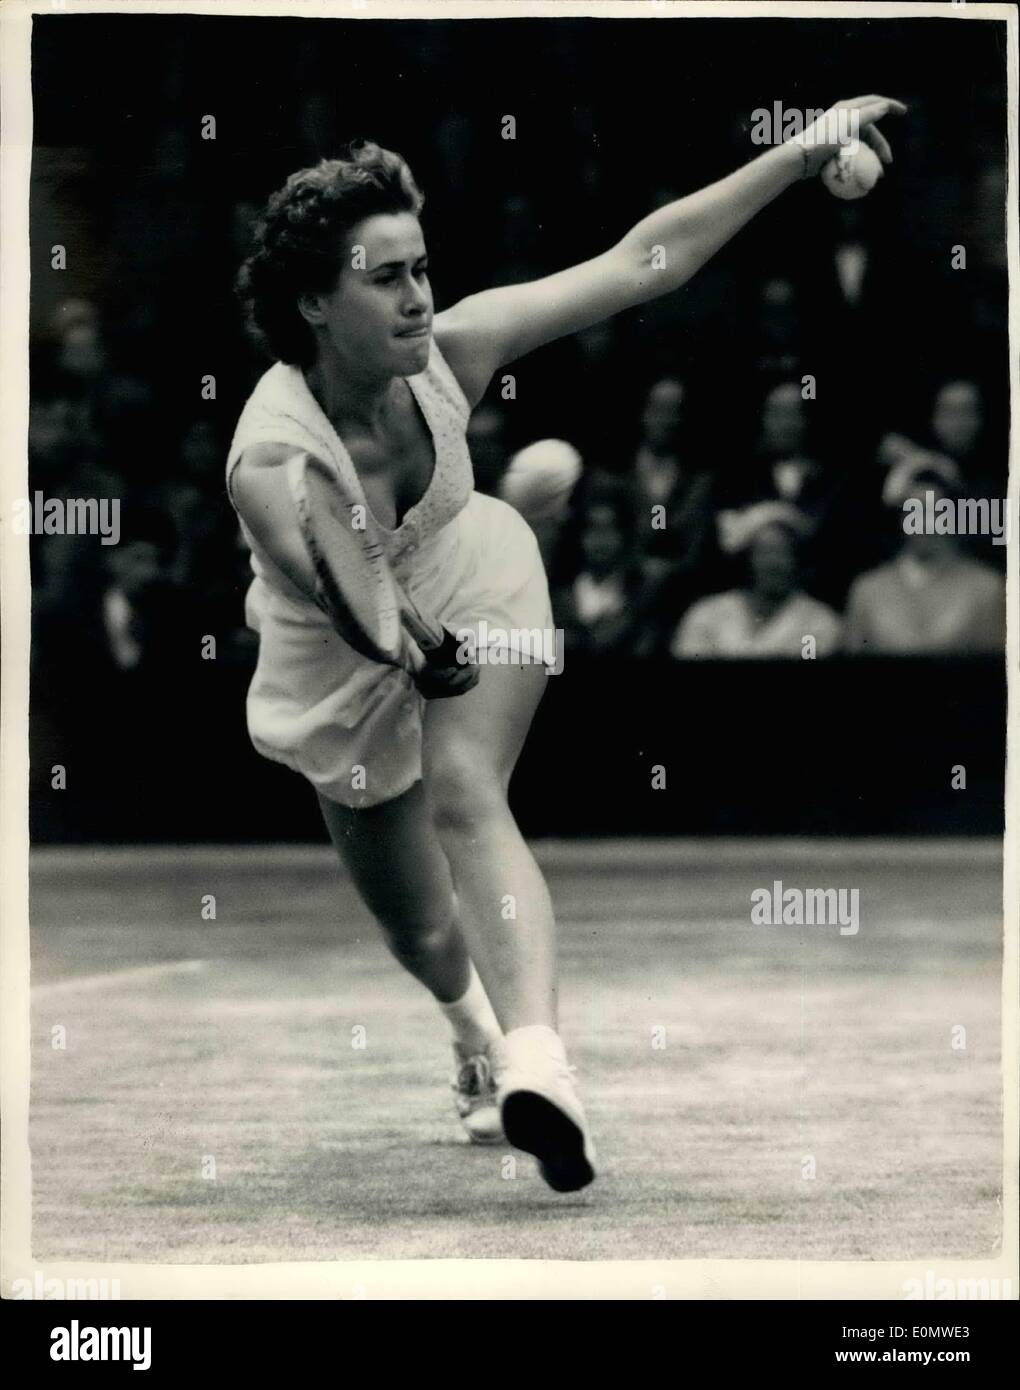 Jul. 07, 1956 - Wimbledon Tennis championship.Shirley Bloomer in Play. Photo Shows Miss Shirley Bloomer of great Britain in play during the match with American's Louise Broughat Wimbledon this afternoon. - Stock Image